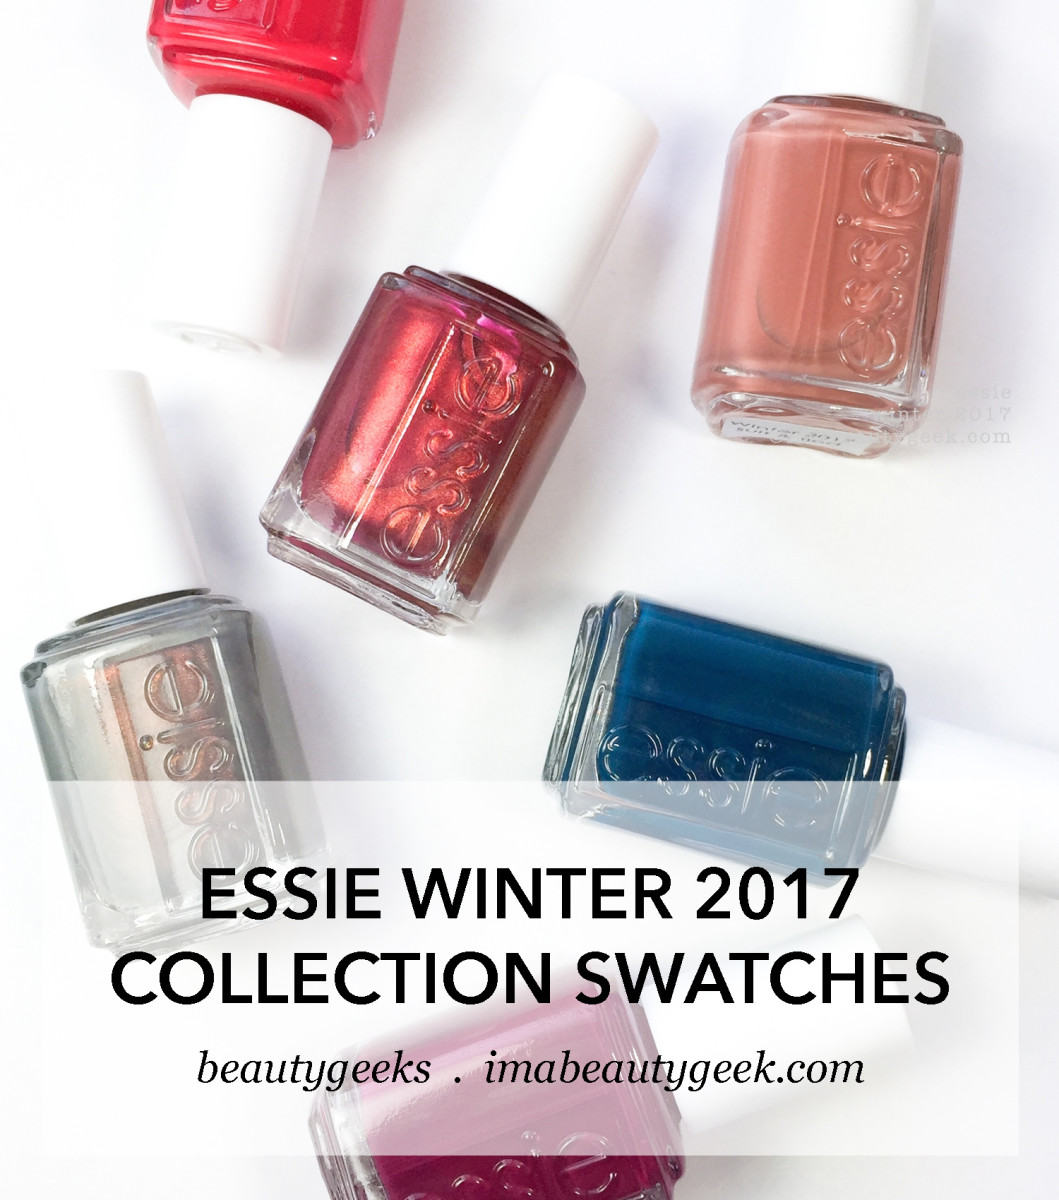 Essie Winter 2017 Collection Swatches & Review